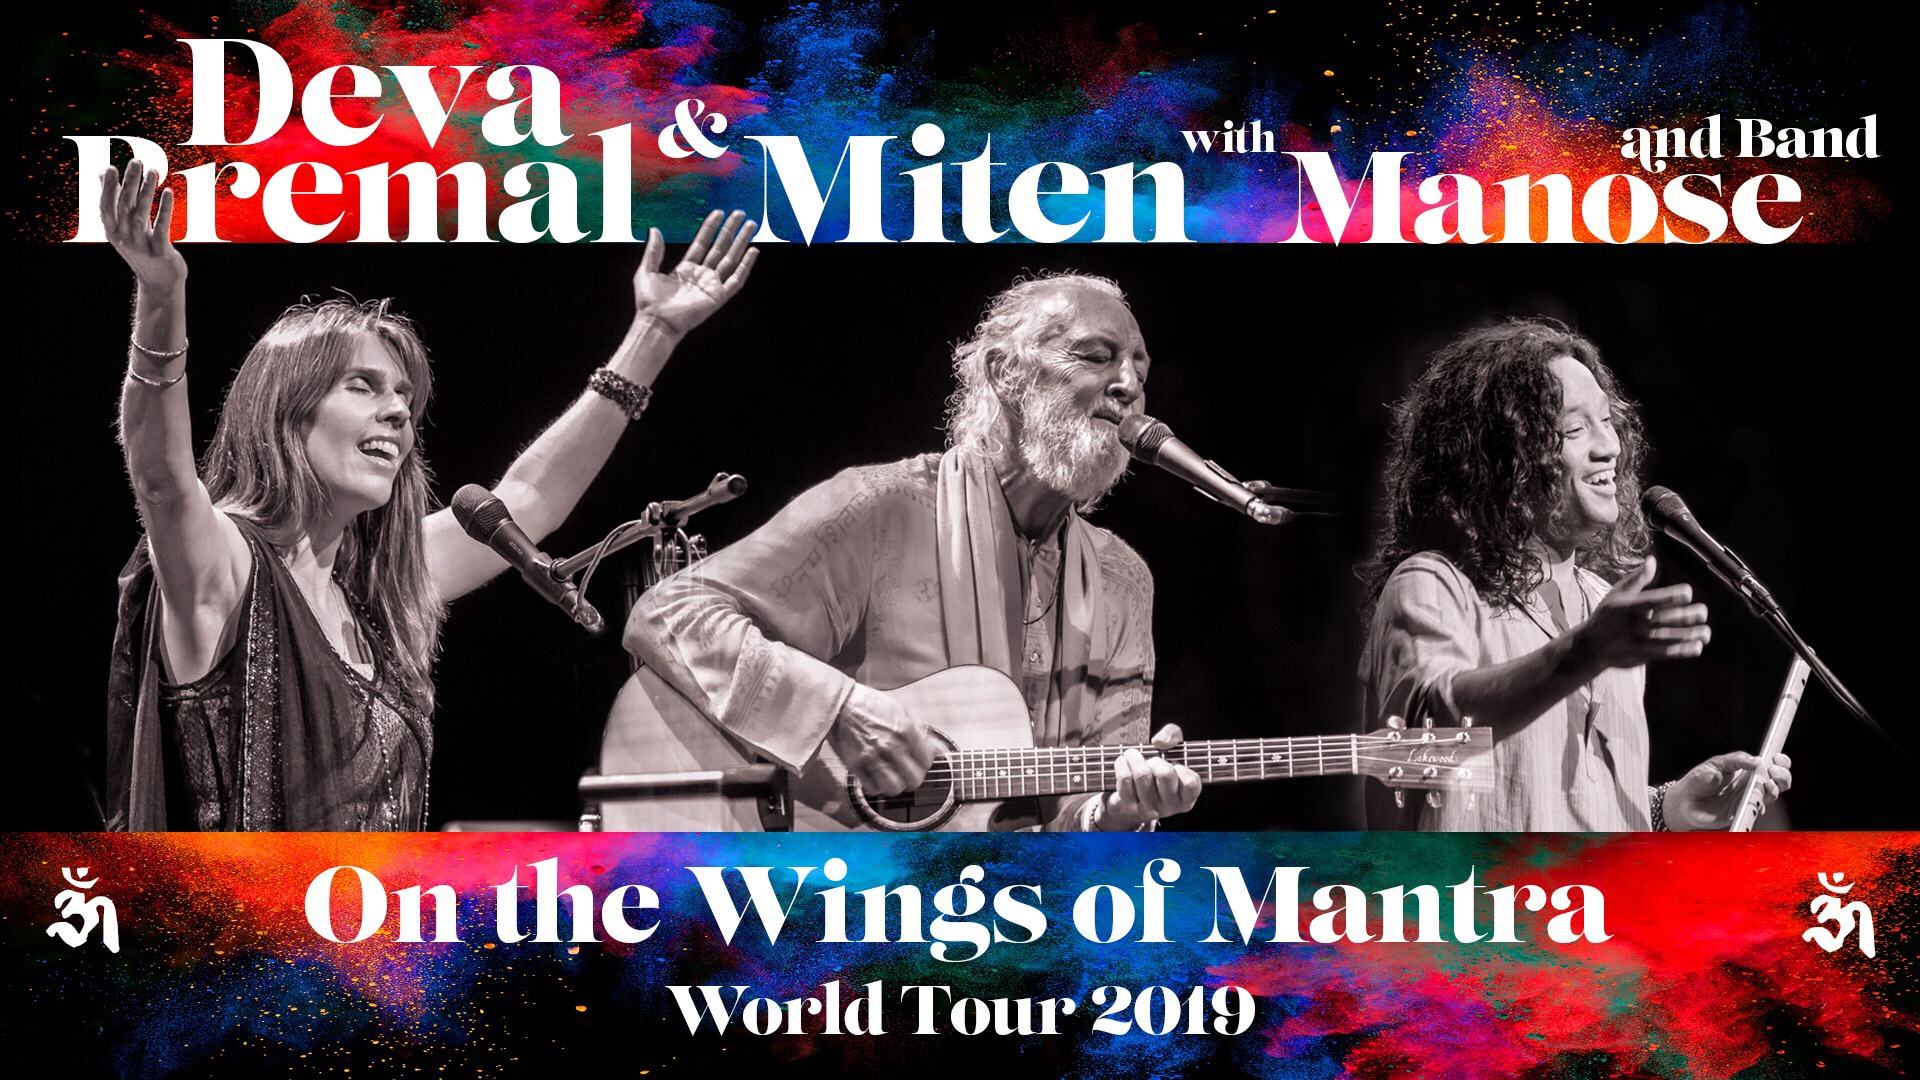 Deva Premal & Miten with Manose: On the Wings of Mantra | Banyen